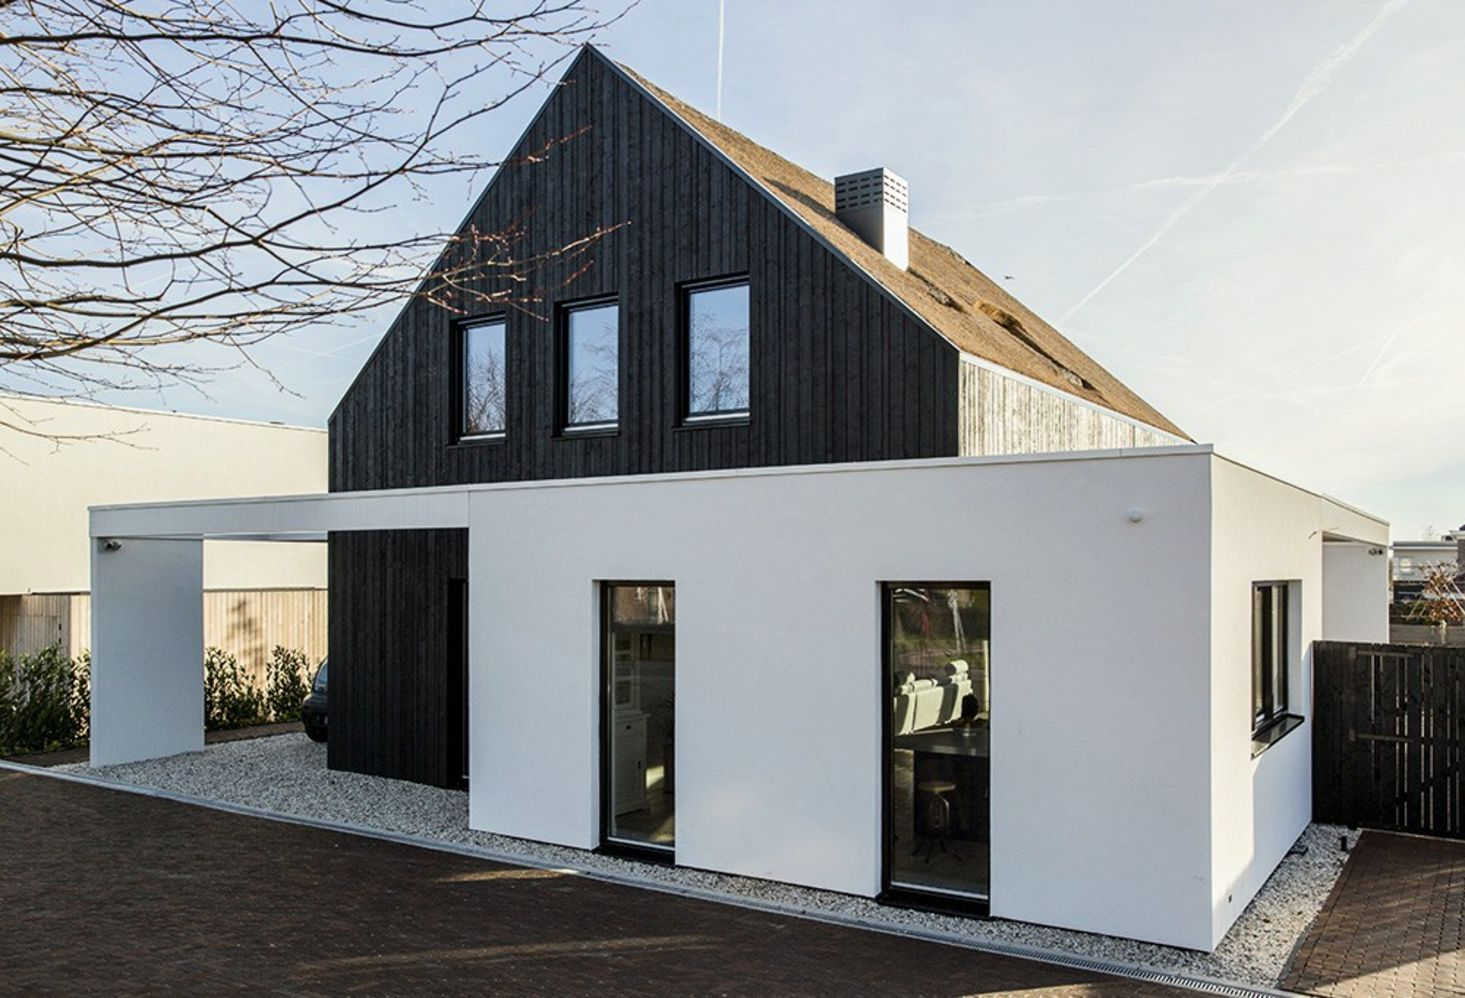 Modern barn house project designed with sleek character combining old and new architecture style Out Of The Box (5)